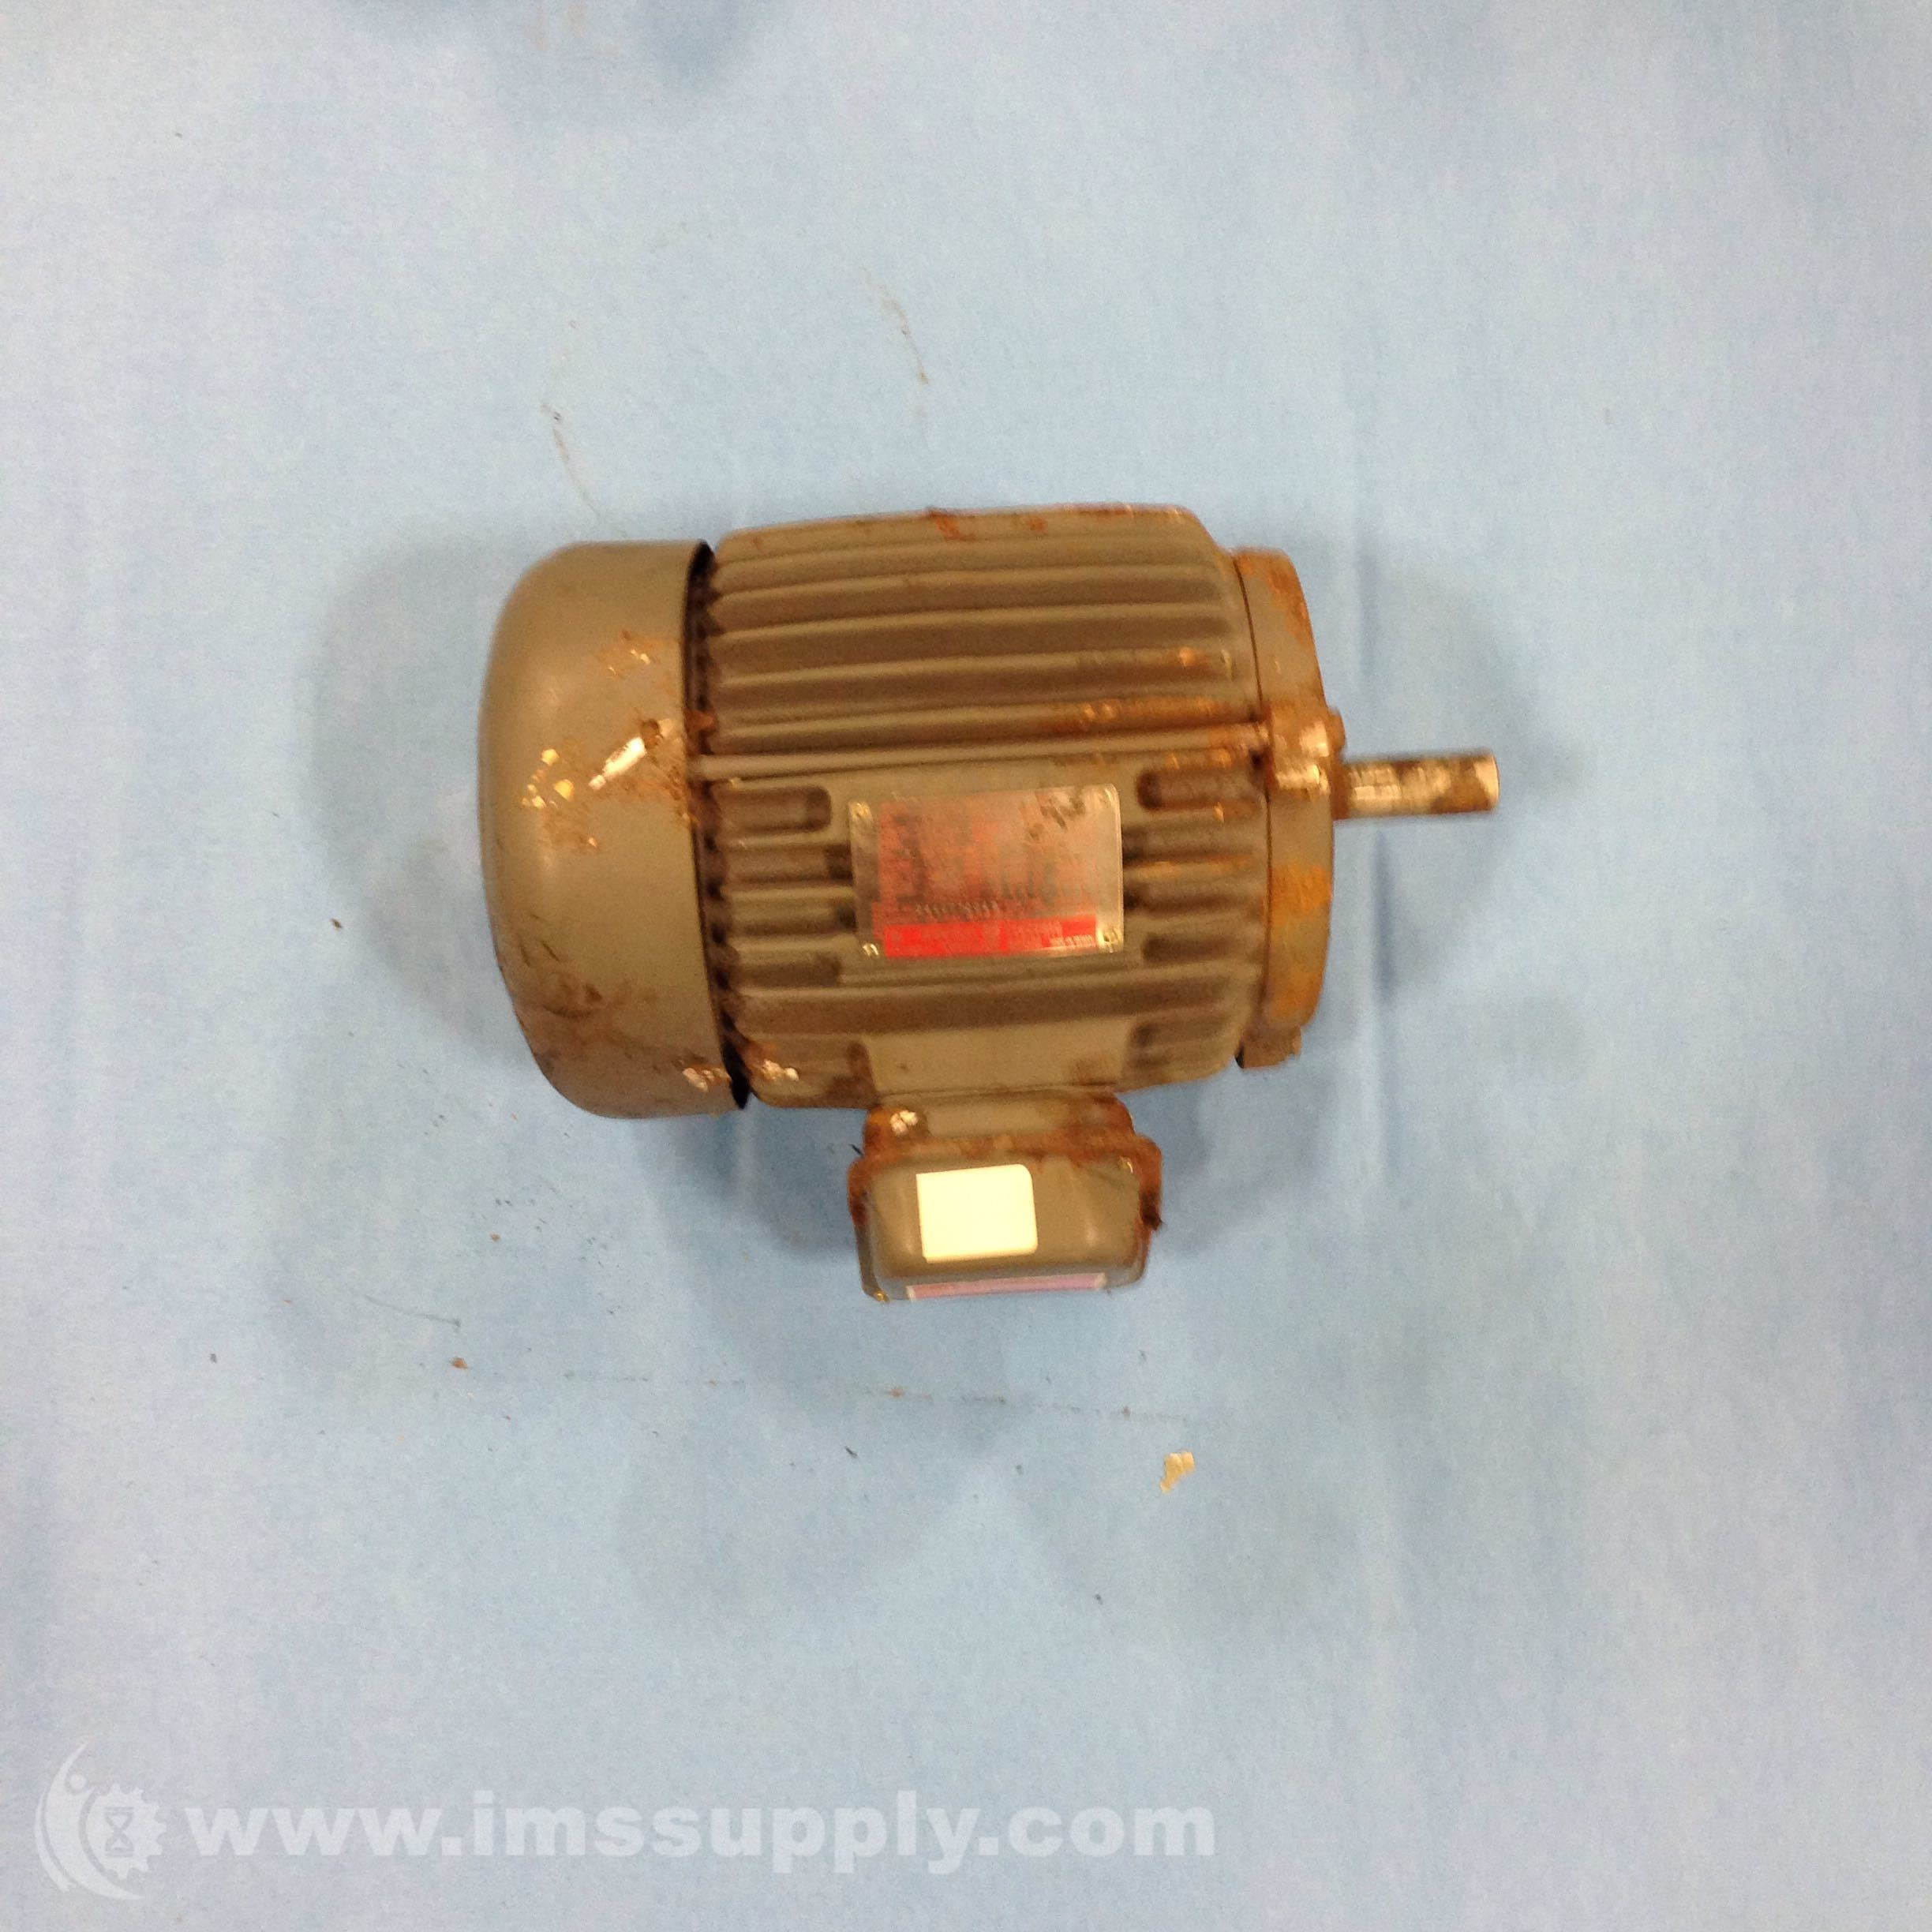 General electric lr47823 motor 1 5hp 1735rpm 145t fr 230 for Ge electric motors catalog